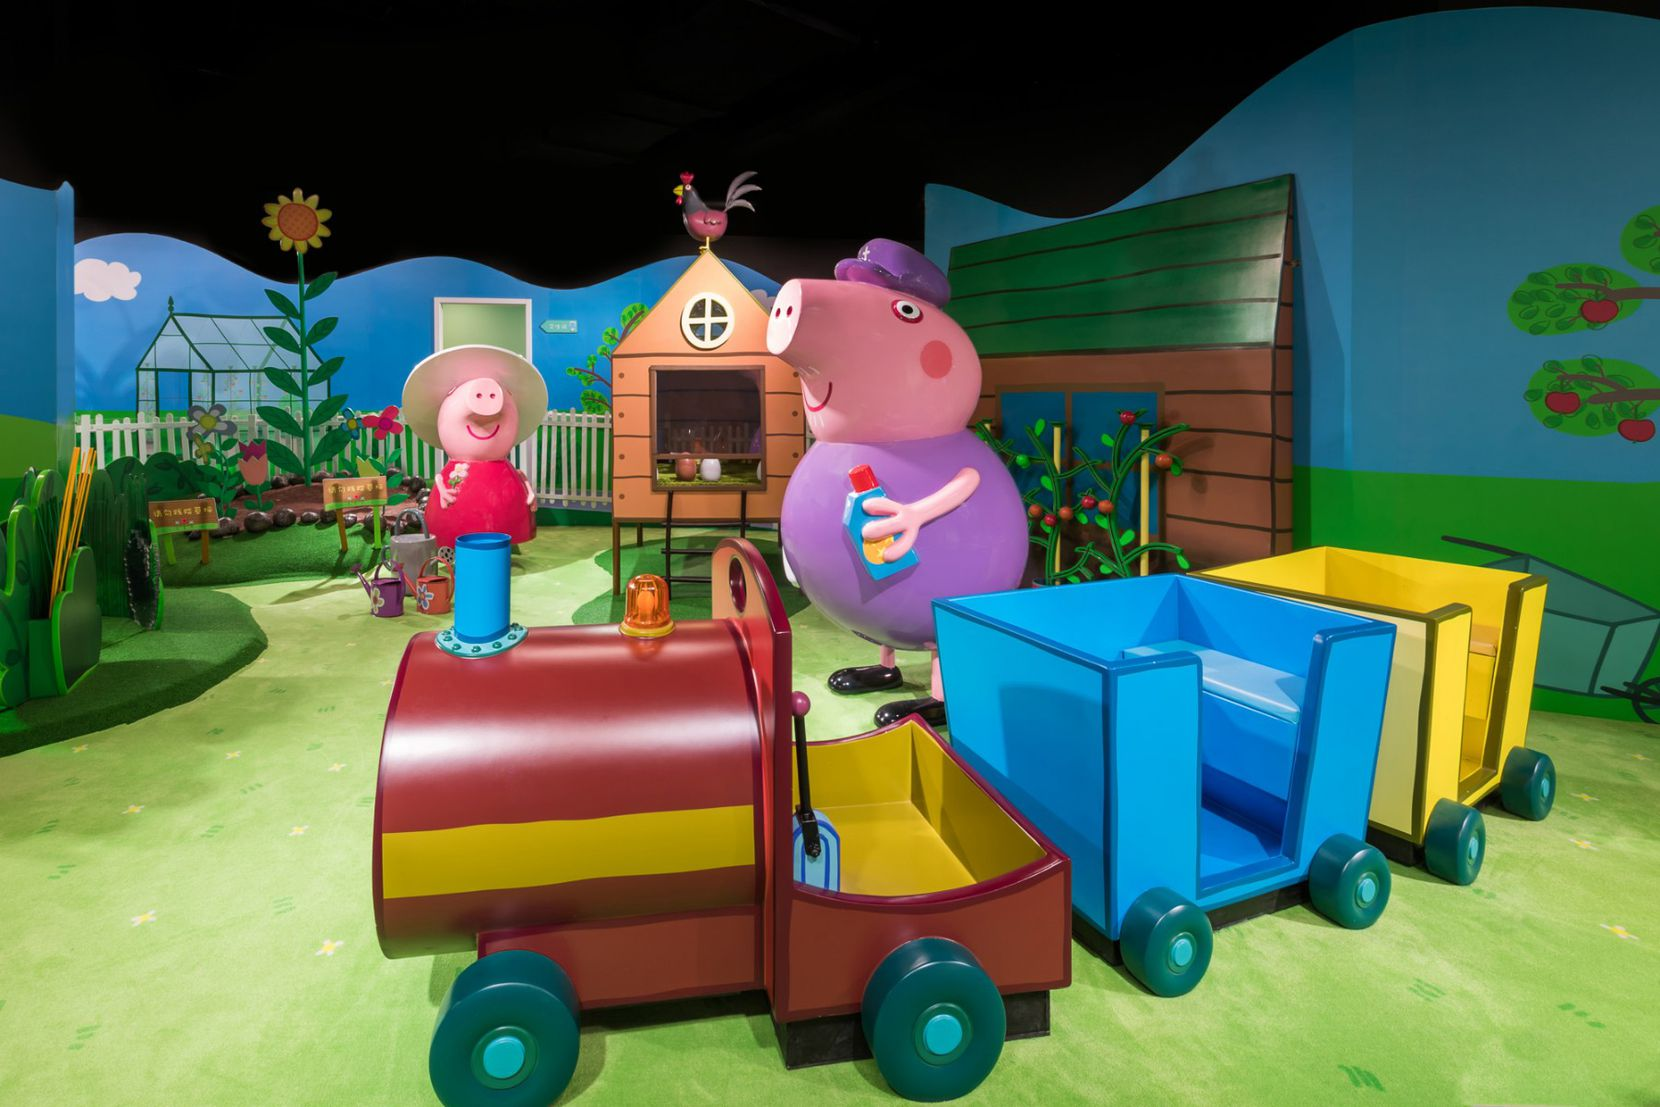 Preschoolers can learn to garden and farm at Grandma and Grandpa Pig's place.